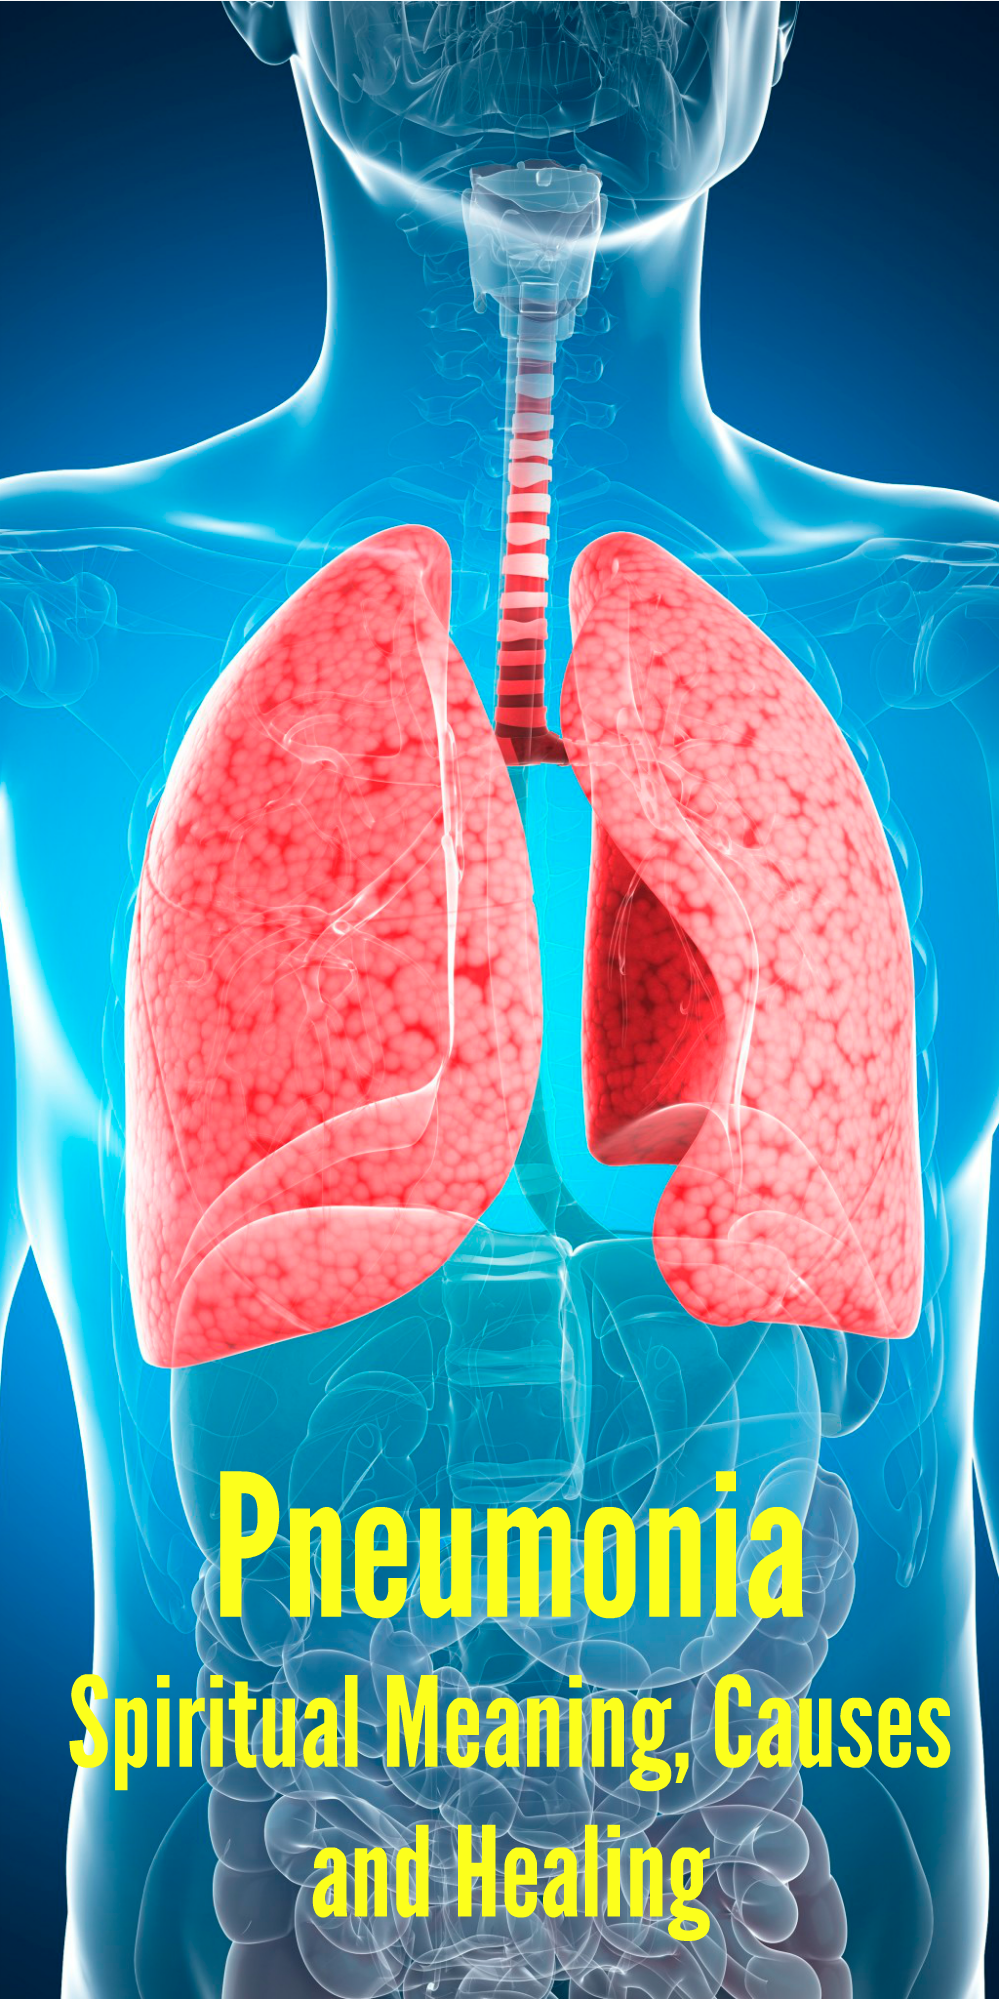 Pneumonia - Spiritual Meaning, Causes and Healing | HEALTHY EATING